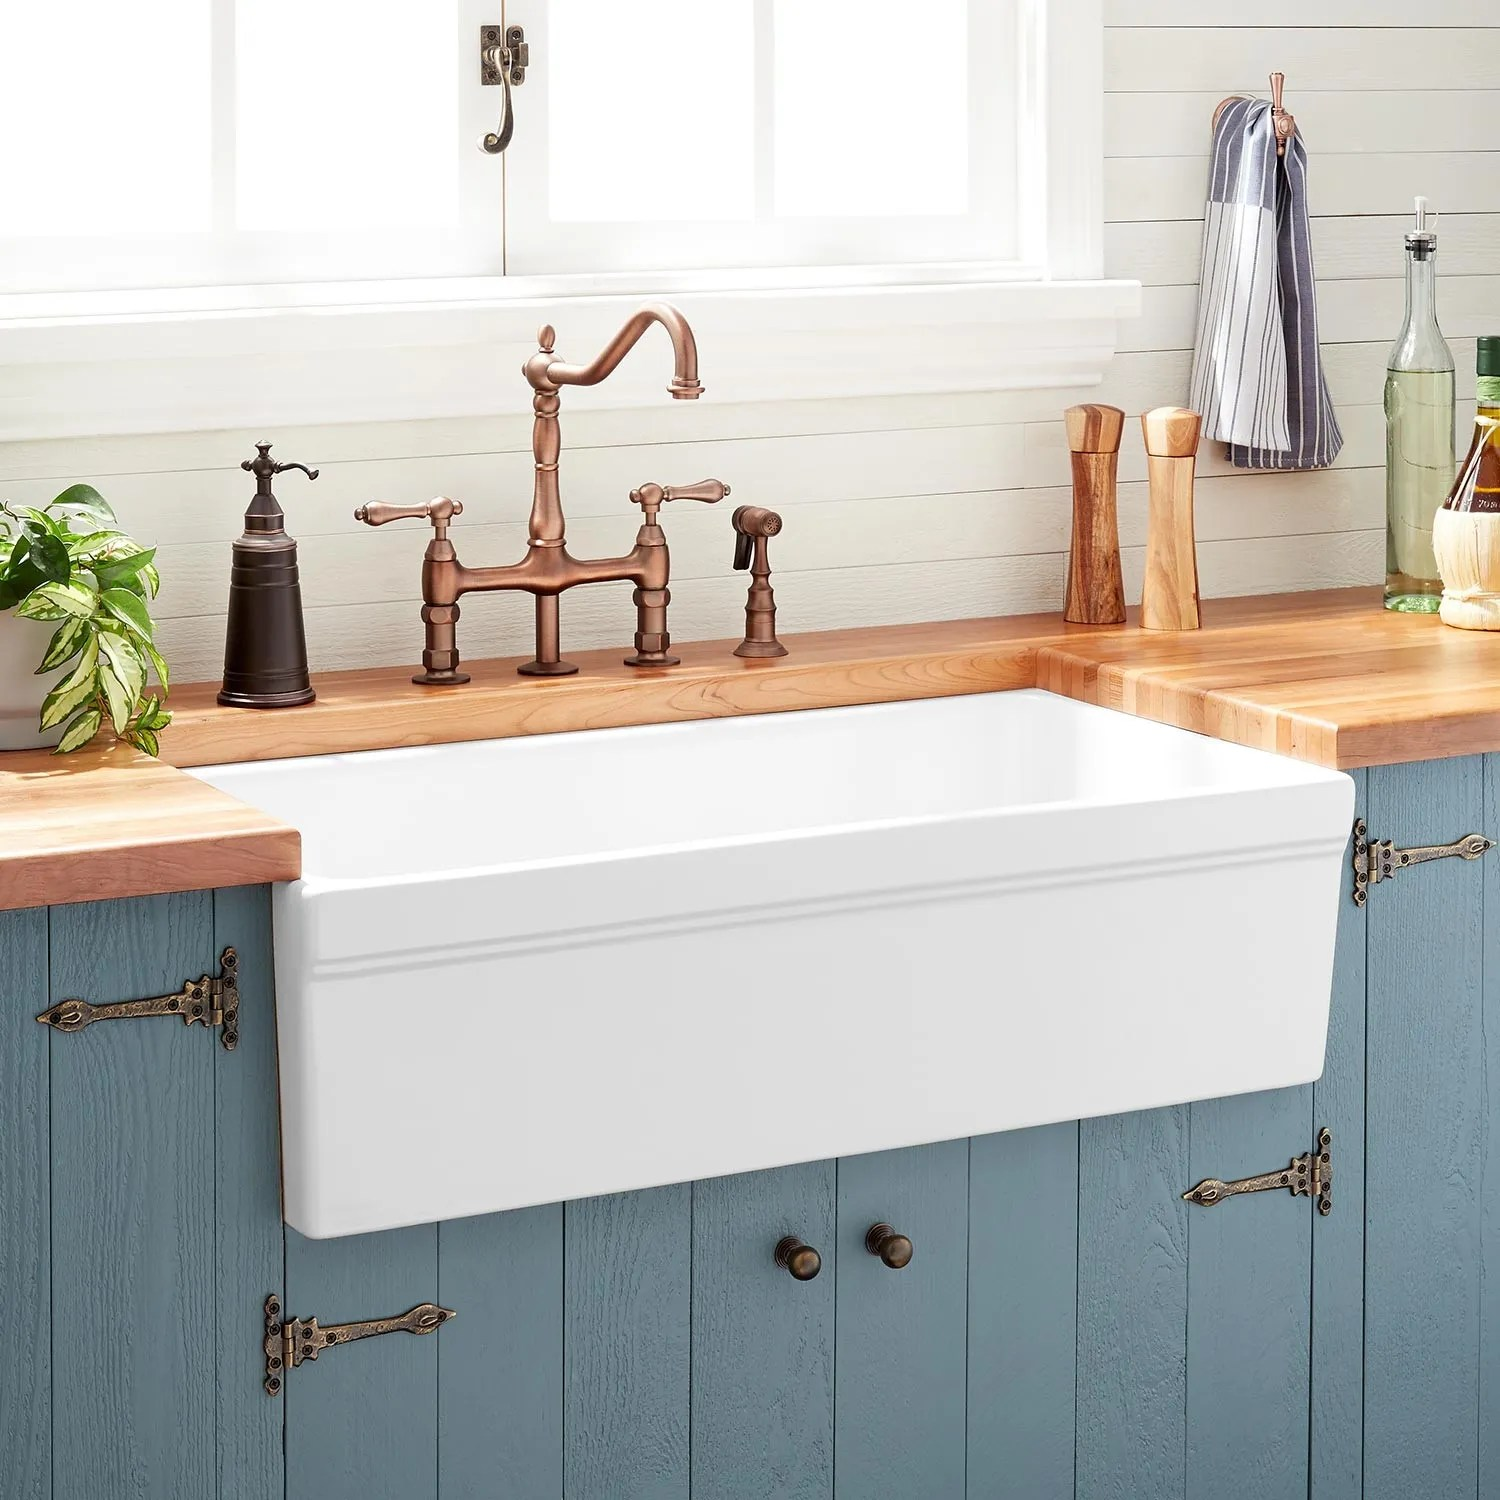 Latoscana Farmhouse Sink 36 36 Quot Gallo Fireclay Farmhouse Sink White Kitchen